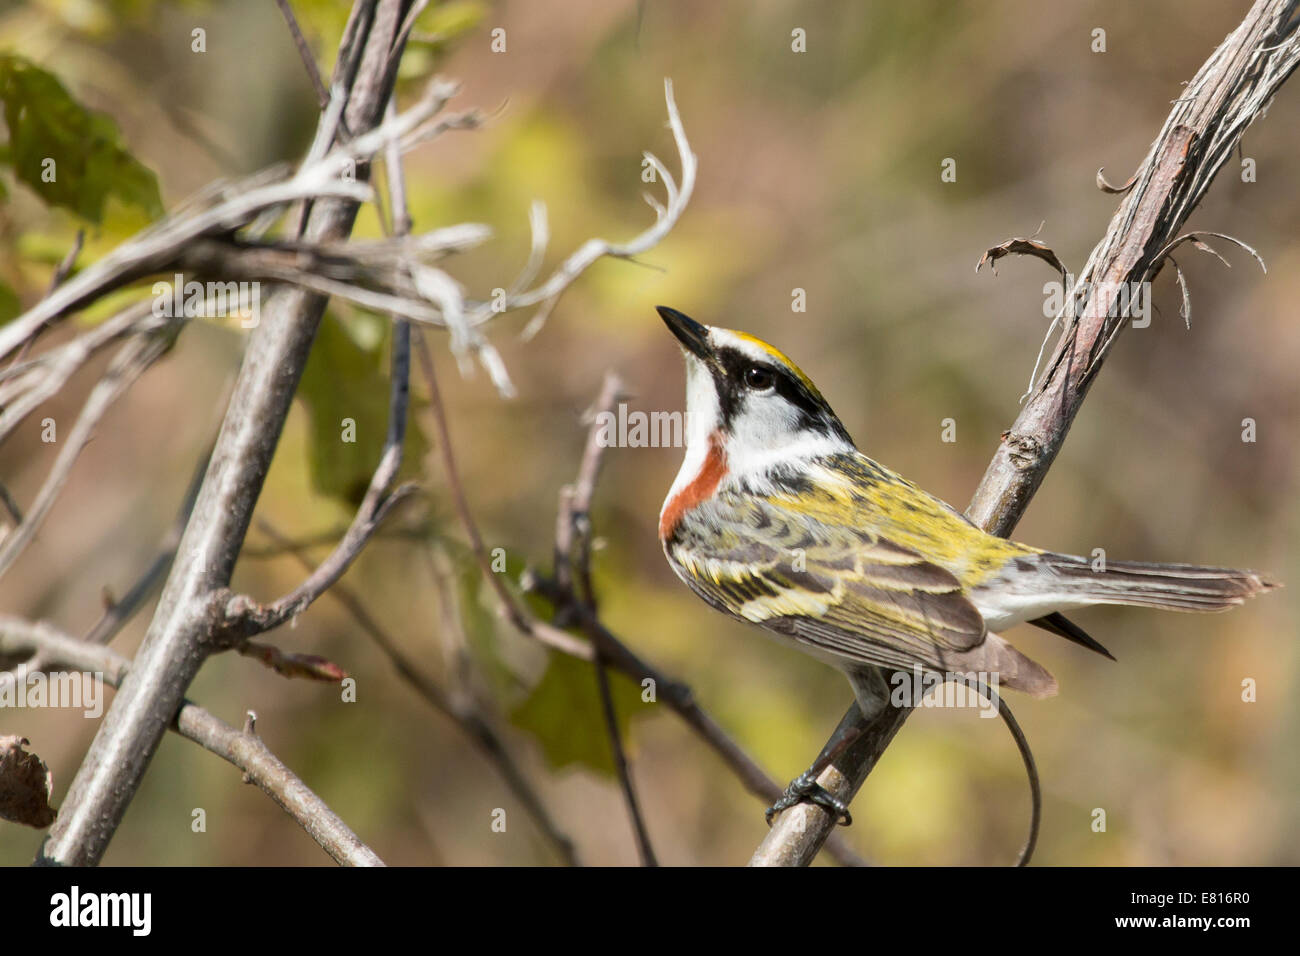 Chestnut-sided warbler - Dendroica pensylvanica Stock Photo